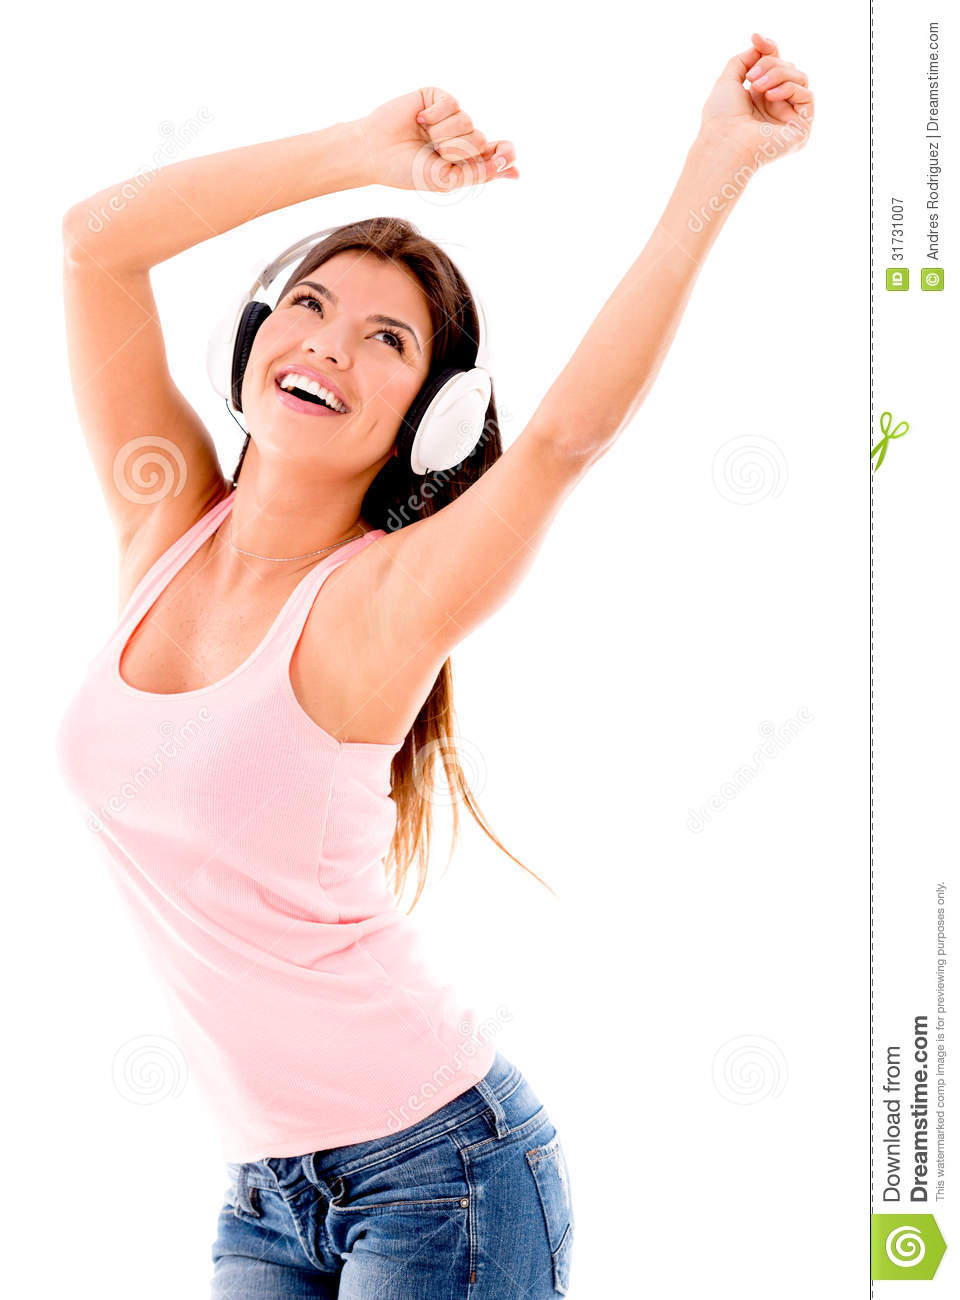 happy-woman-listening-to-music-headphone